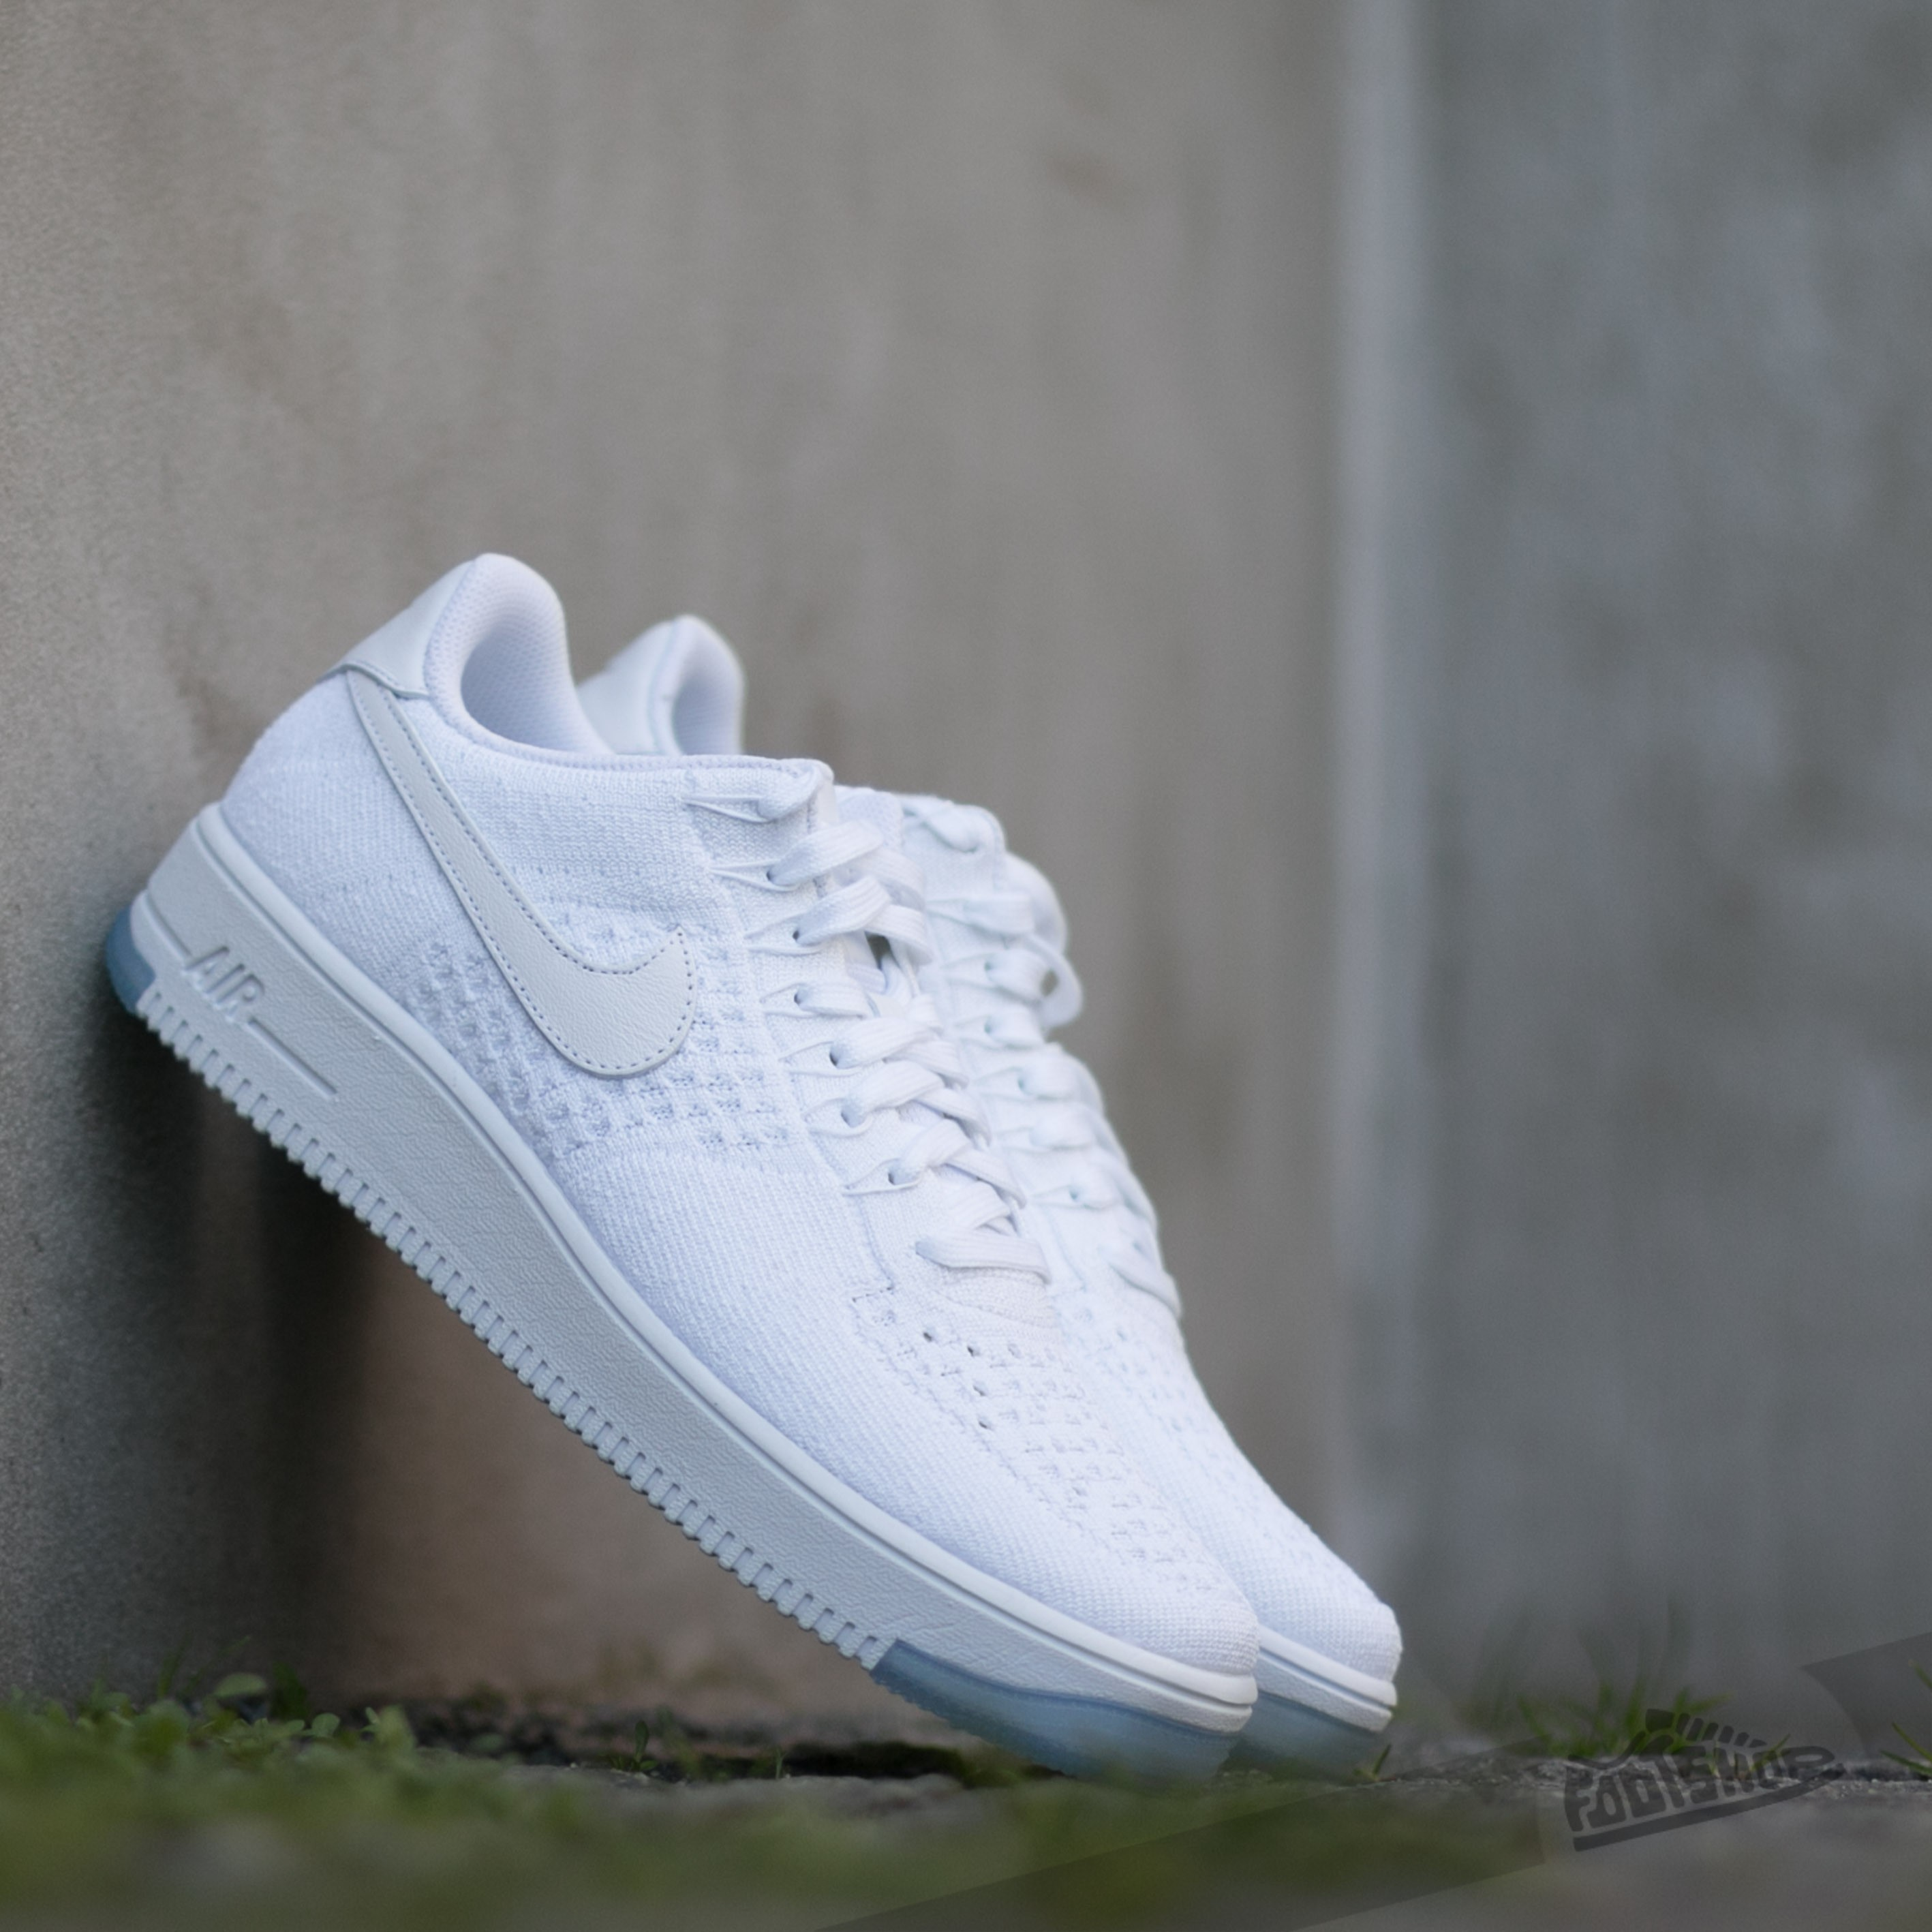 e3622d568 clearance nike air force 1 ultra flyknit low white white ice bdfa2 3a5d0